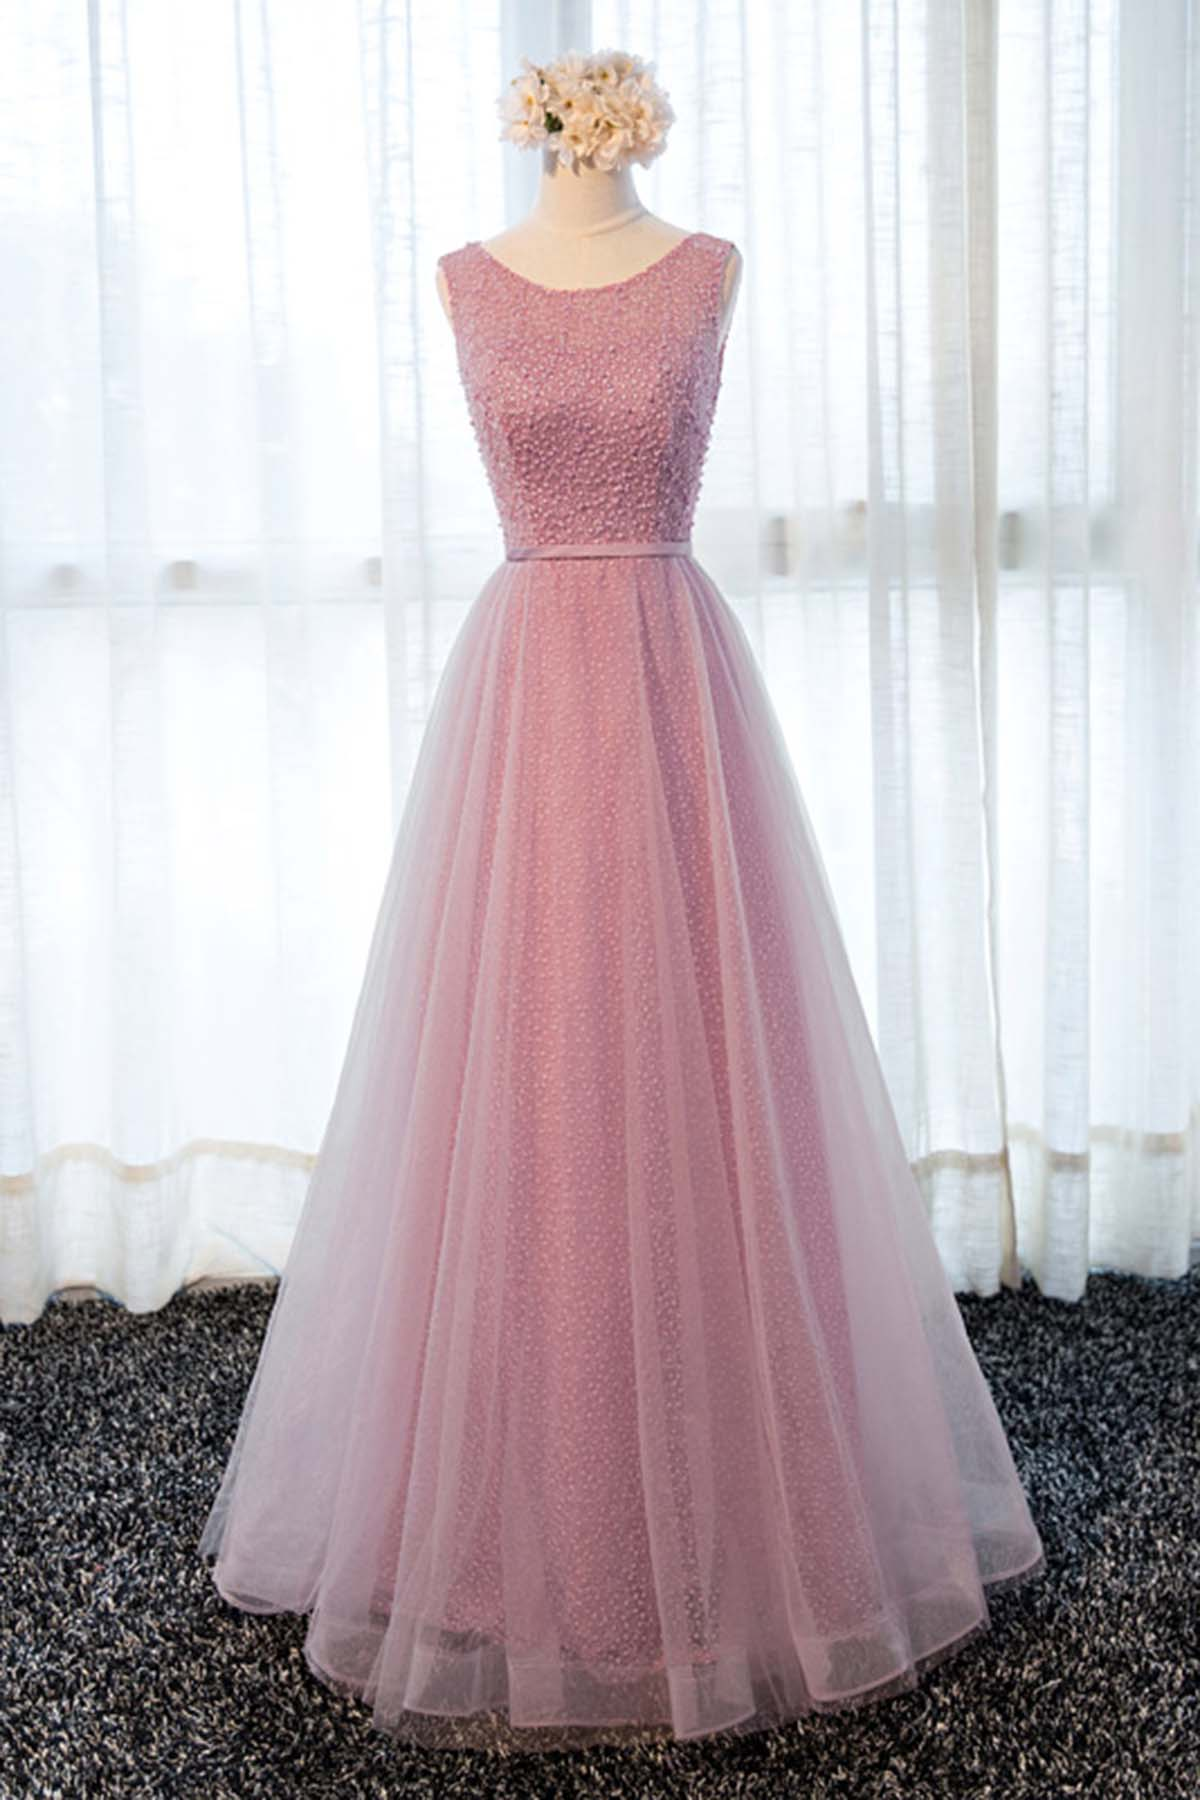 Pink tulle long lace halter sweet 16 prom dress, long spring party ...